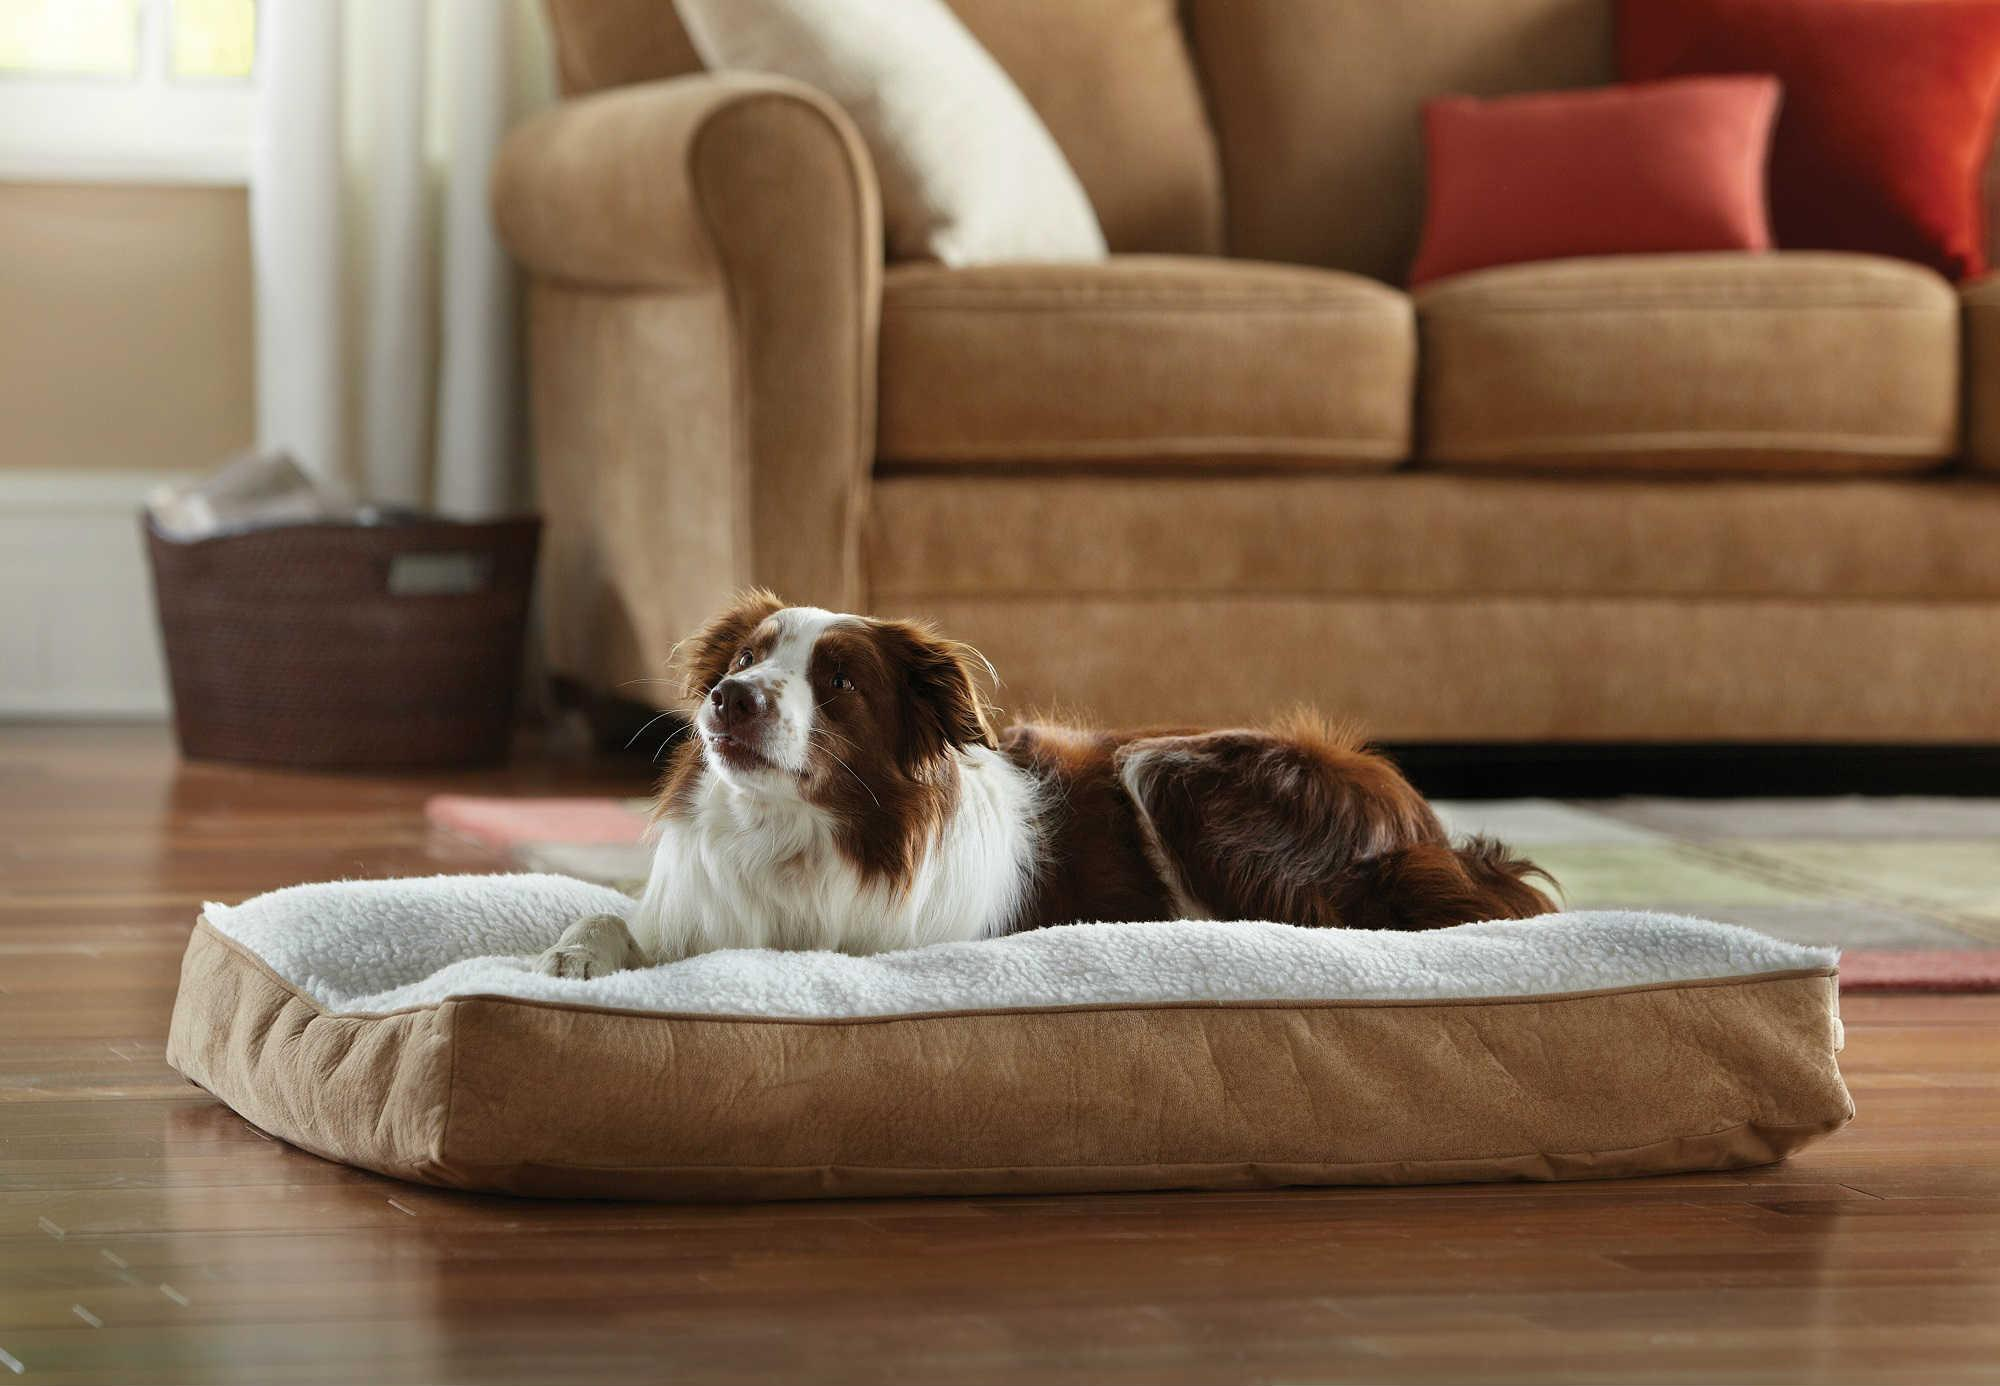 Amazon.com : Animal Planet Sherpa Pet Bed, Large : Animal Planet ...